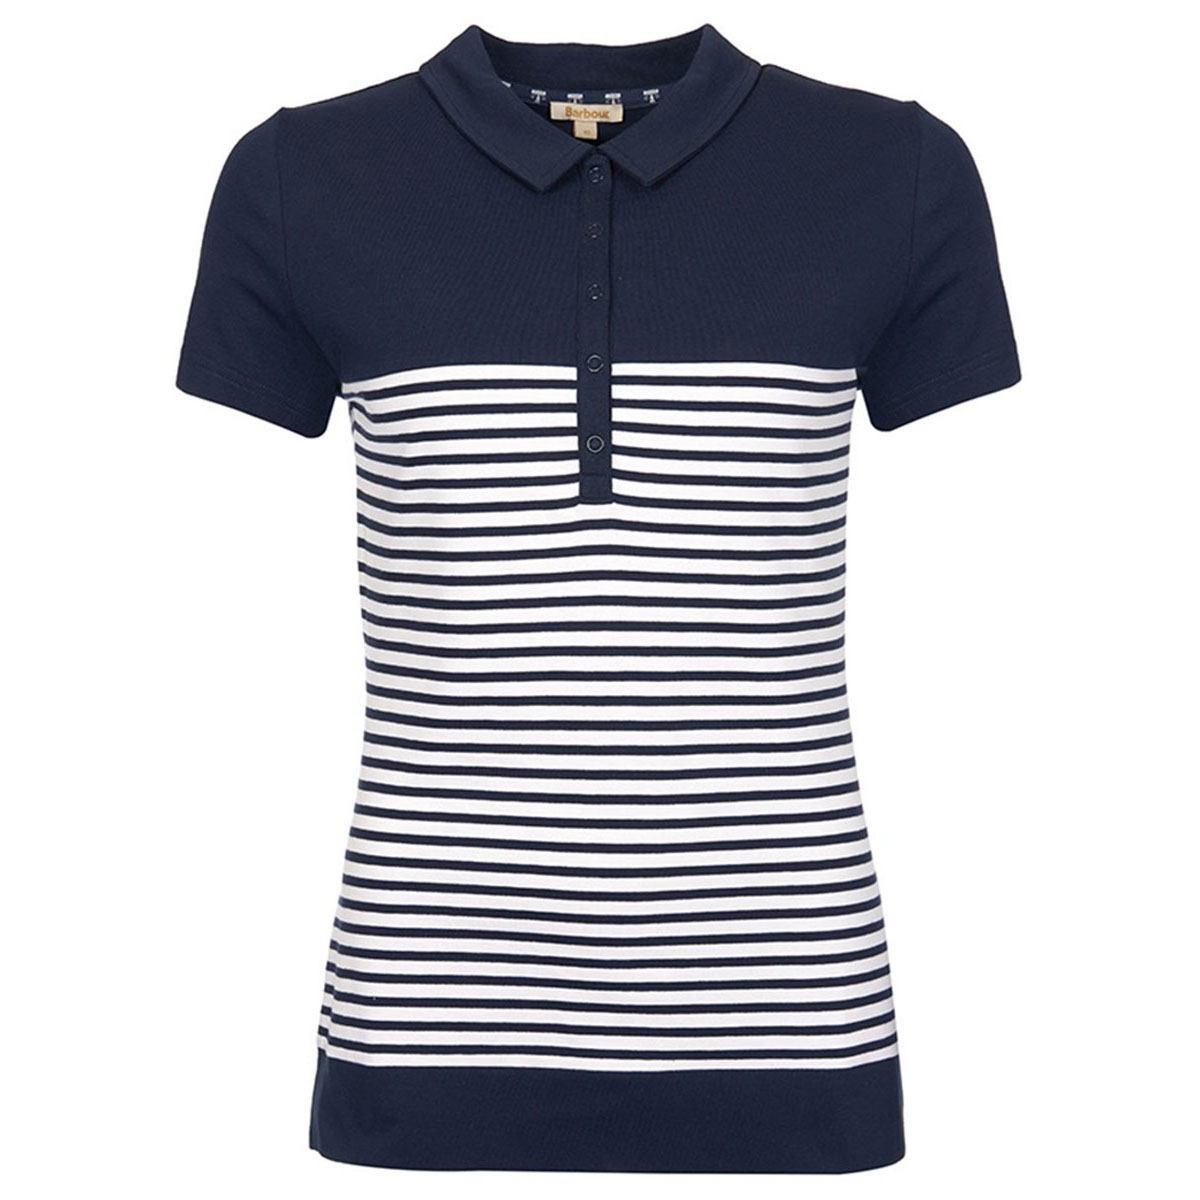 Barbour Barbour Clove Hitch Polo Navy Barbour Lifestyle: From the Seafarer collection